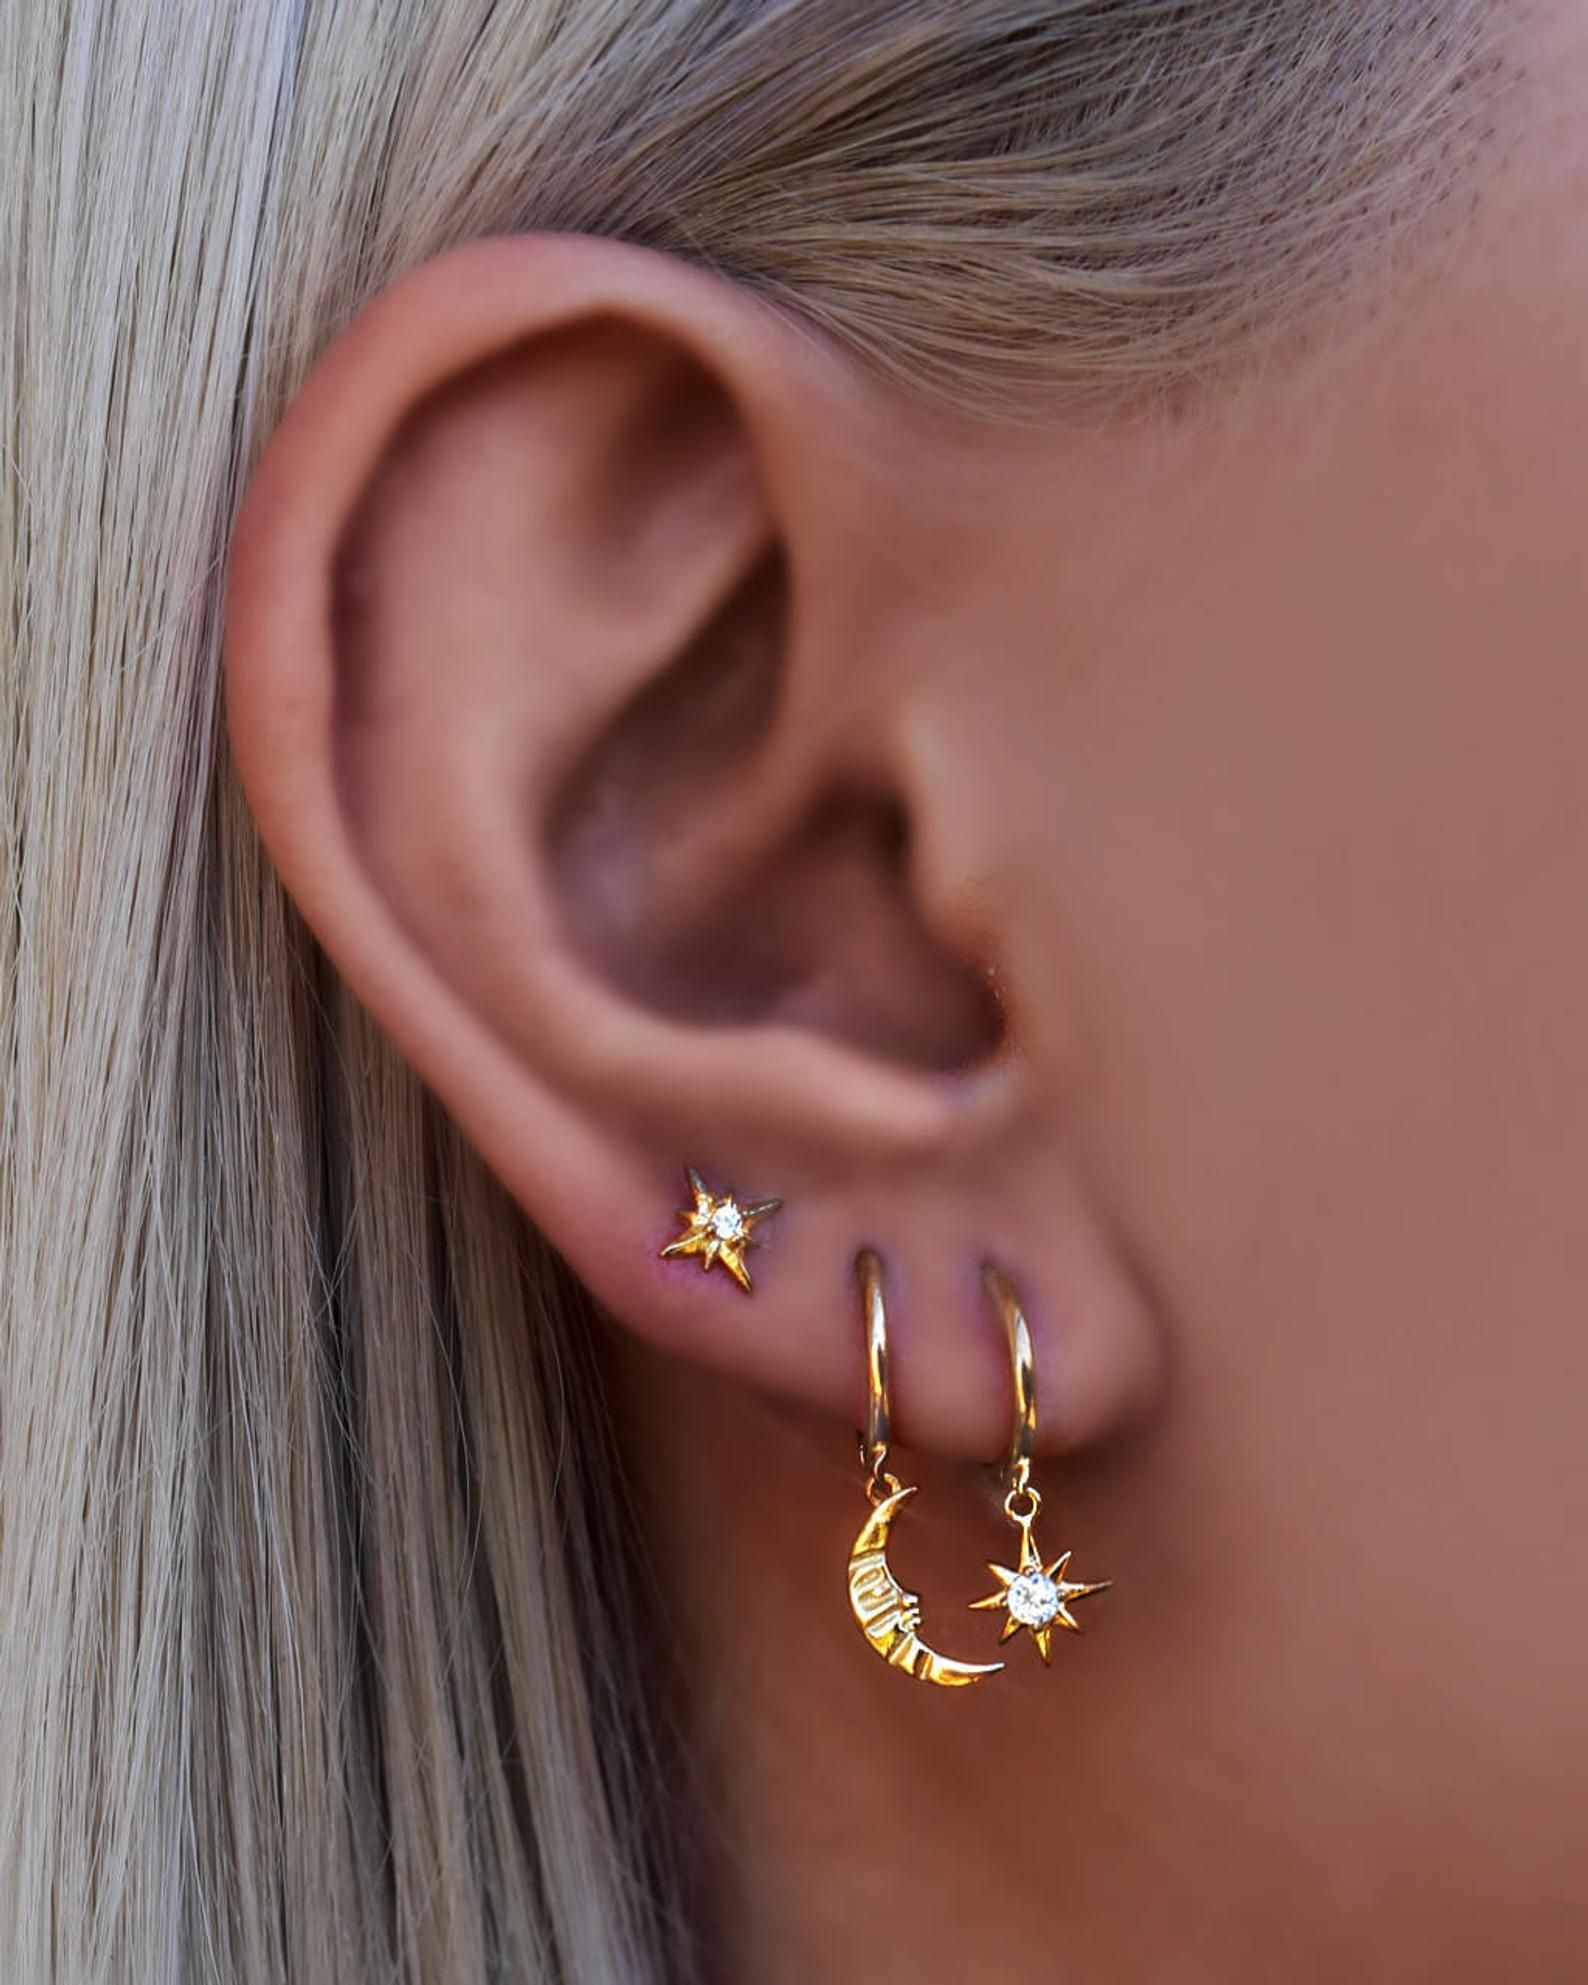 Photo of Moon ear hoops, moon and star earrings, silver moon earrings, huggie hoops, gold moon ear hoops, heavenly earrings, dainty earrings, huggie